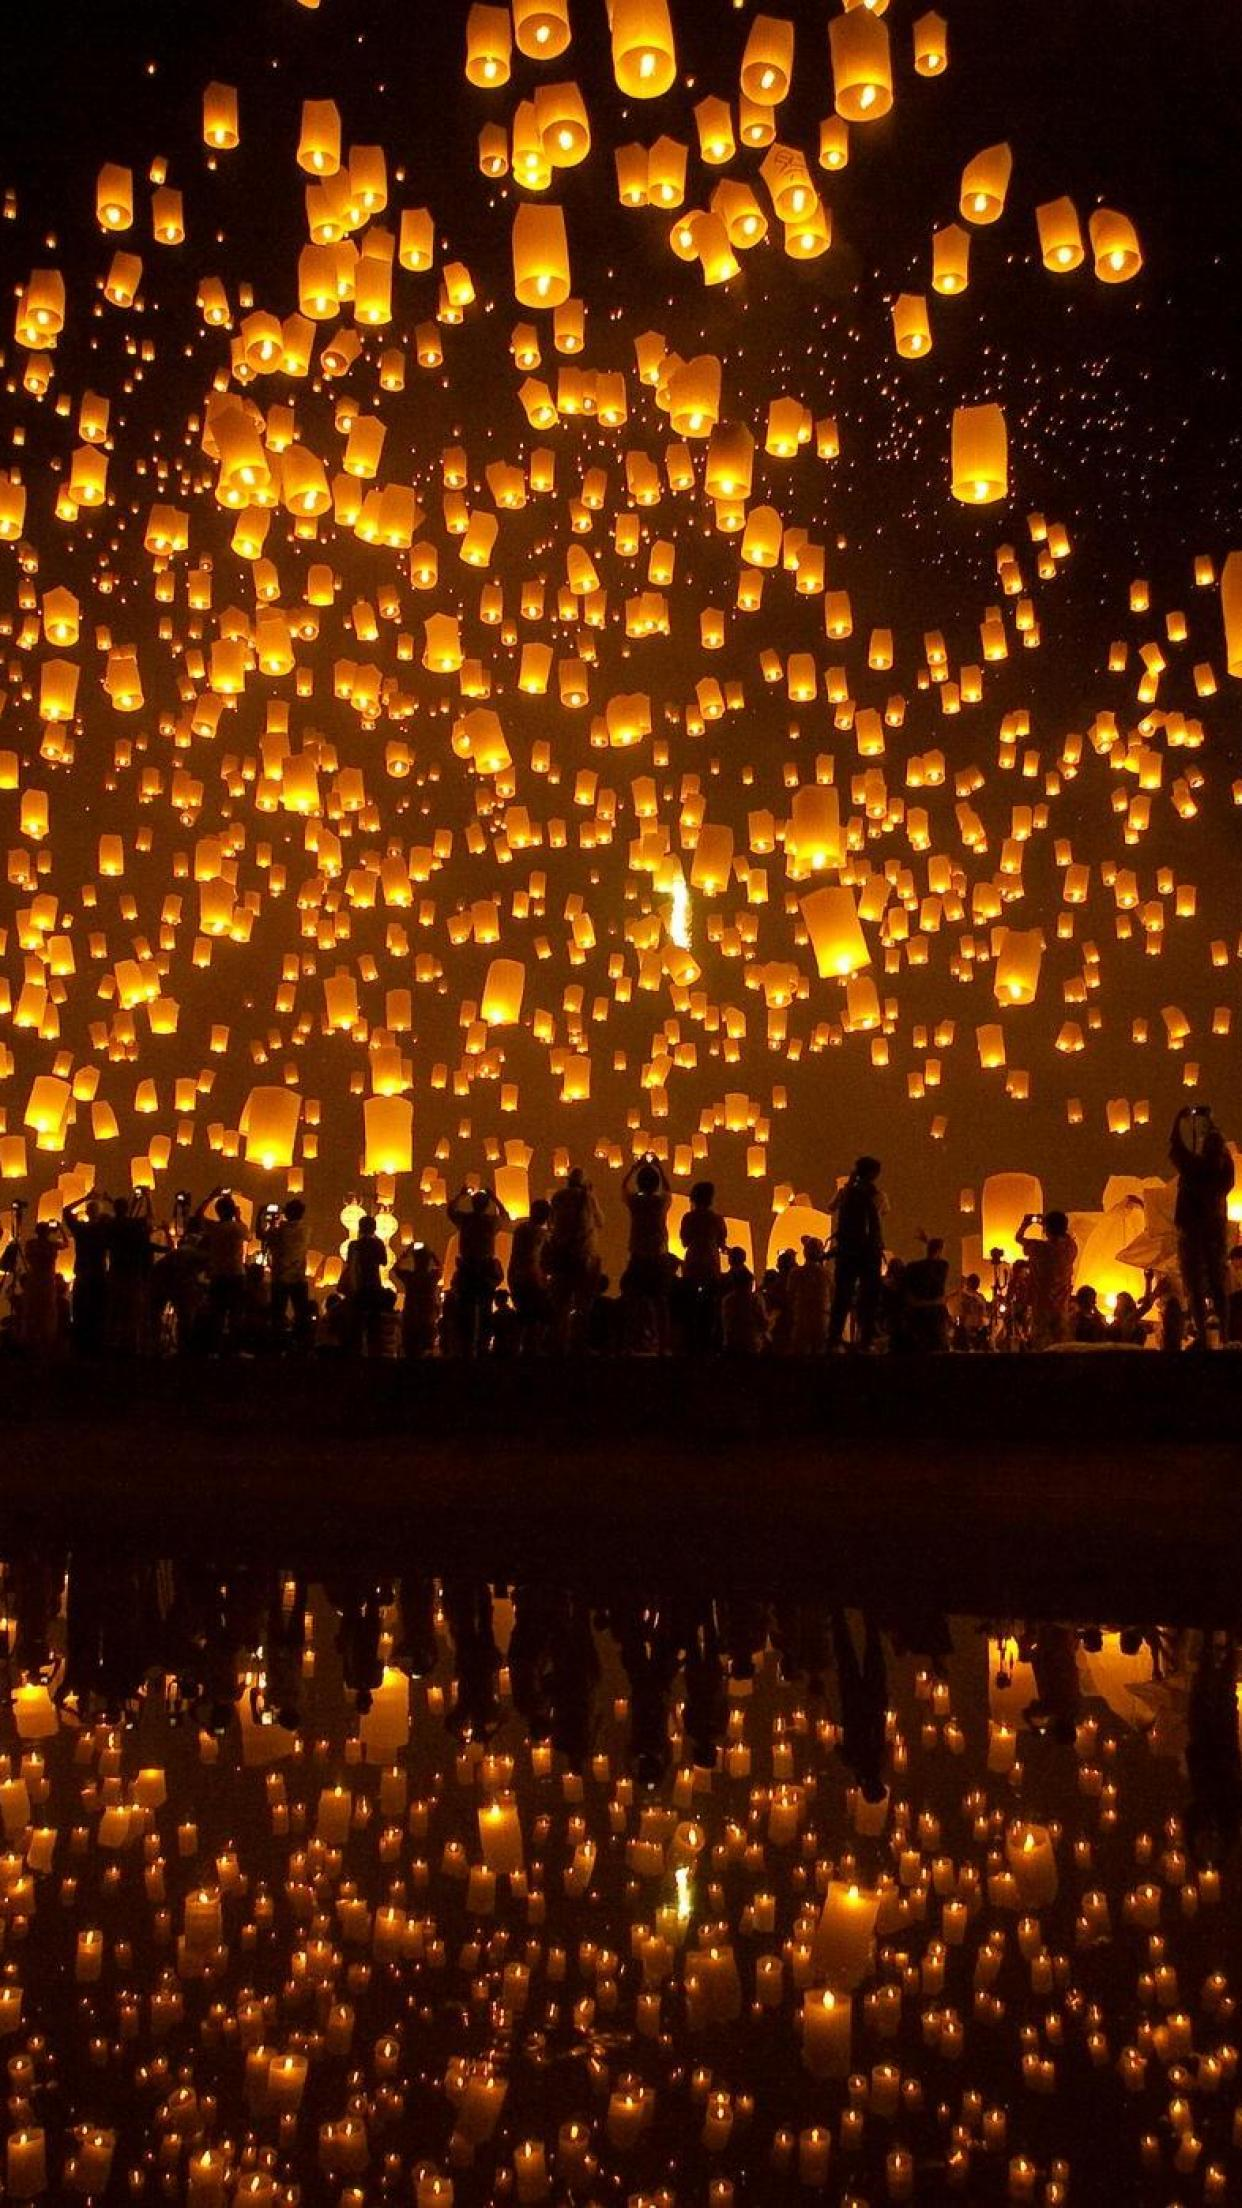 Floating Lanterns Wallpapers - Top Free